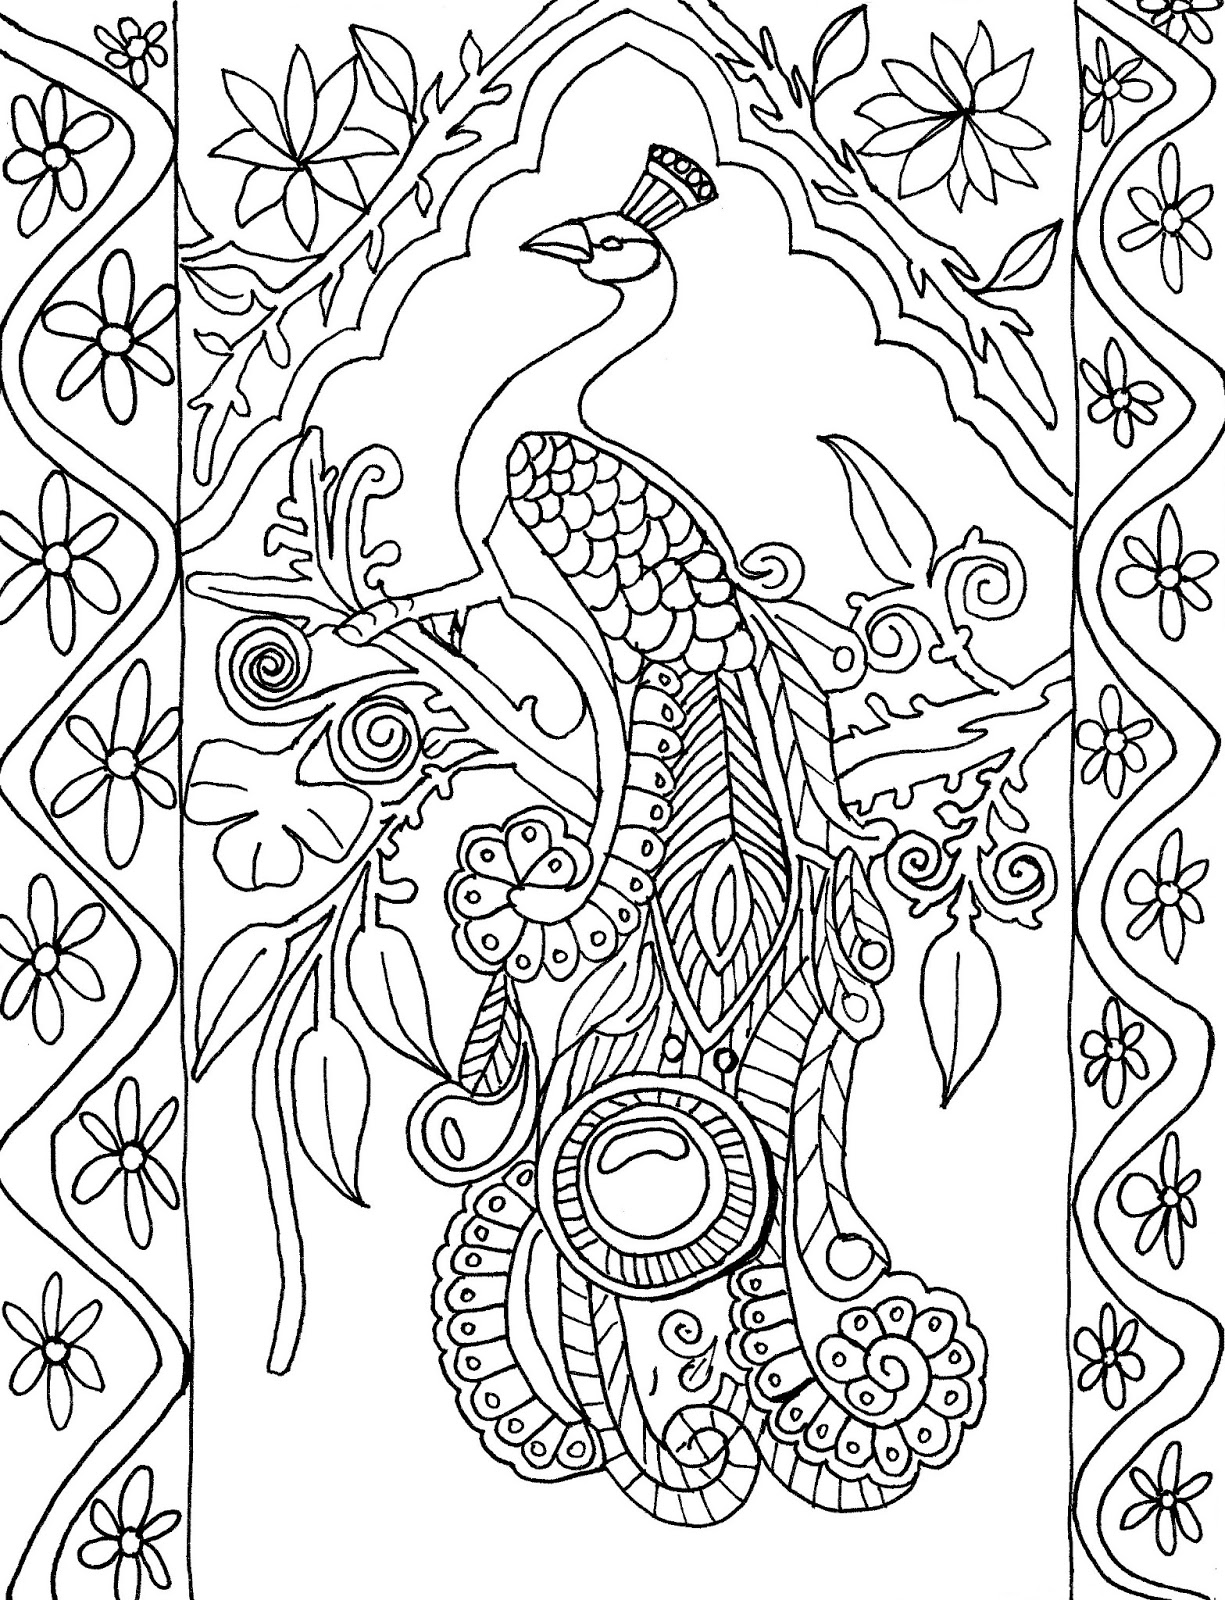 peacock coloring book coloring page world peacock portrait book coloring peacock